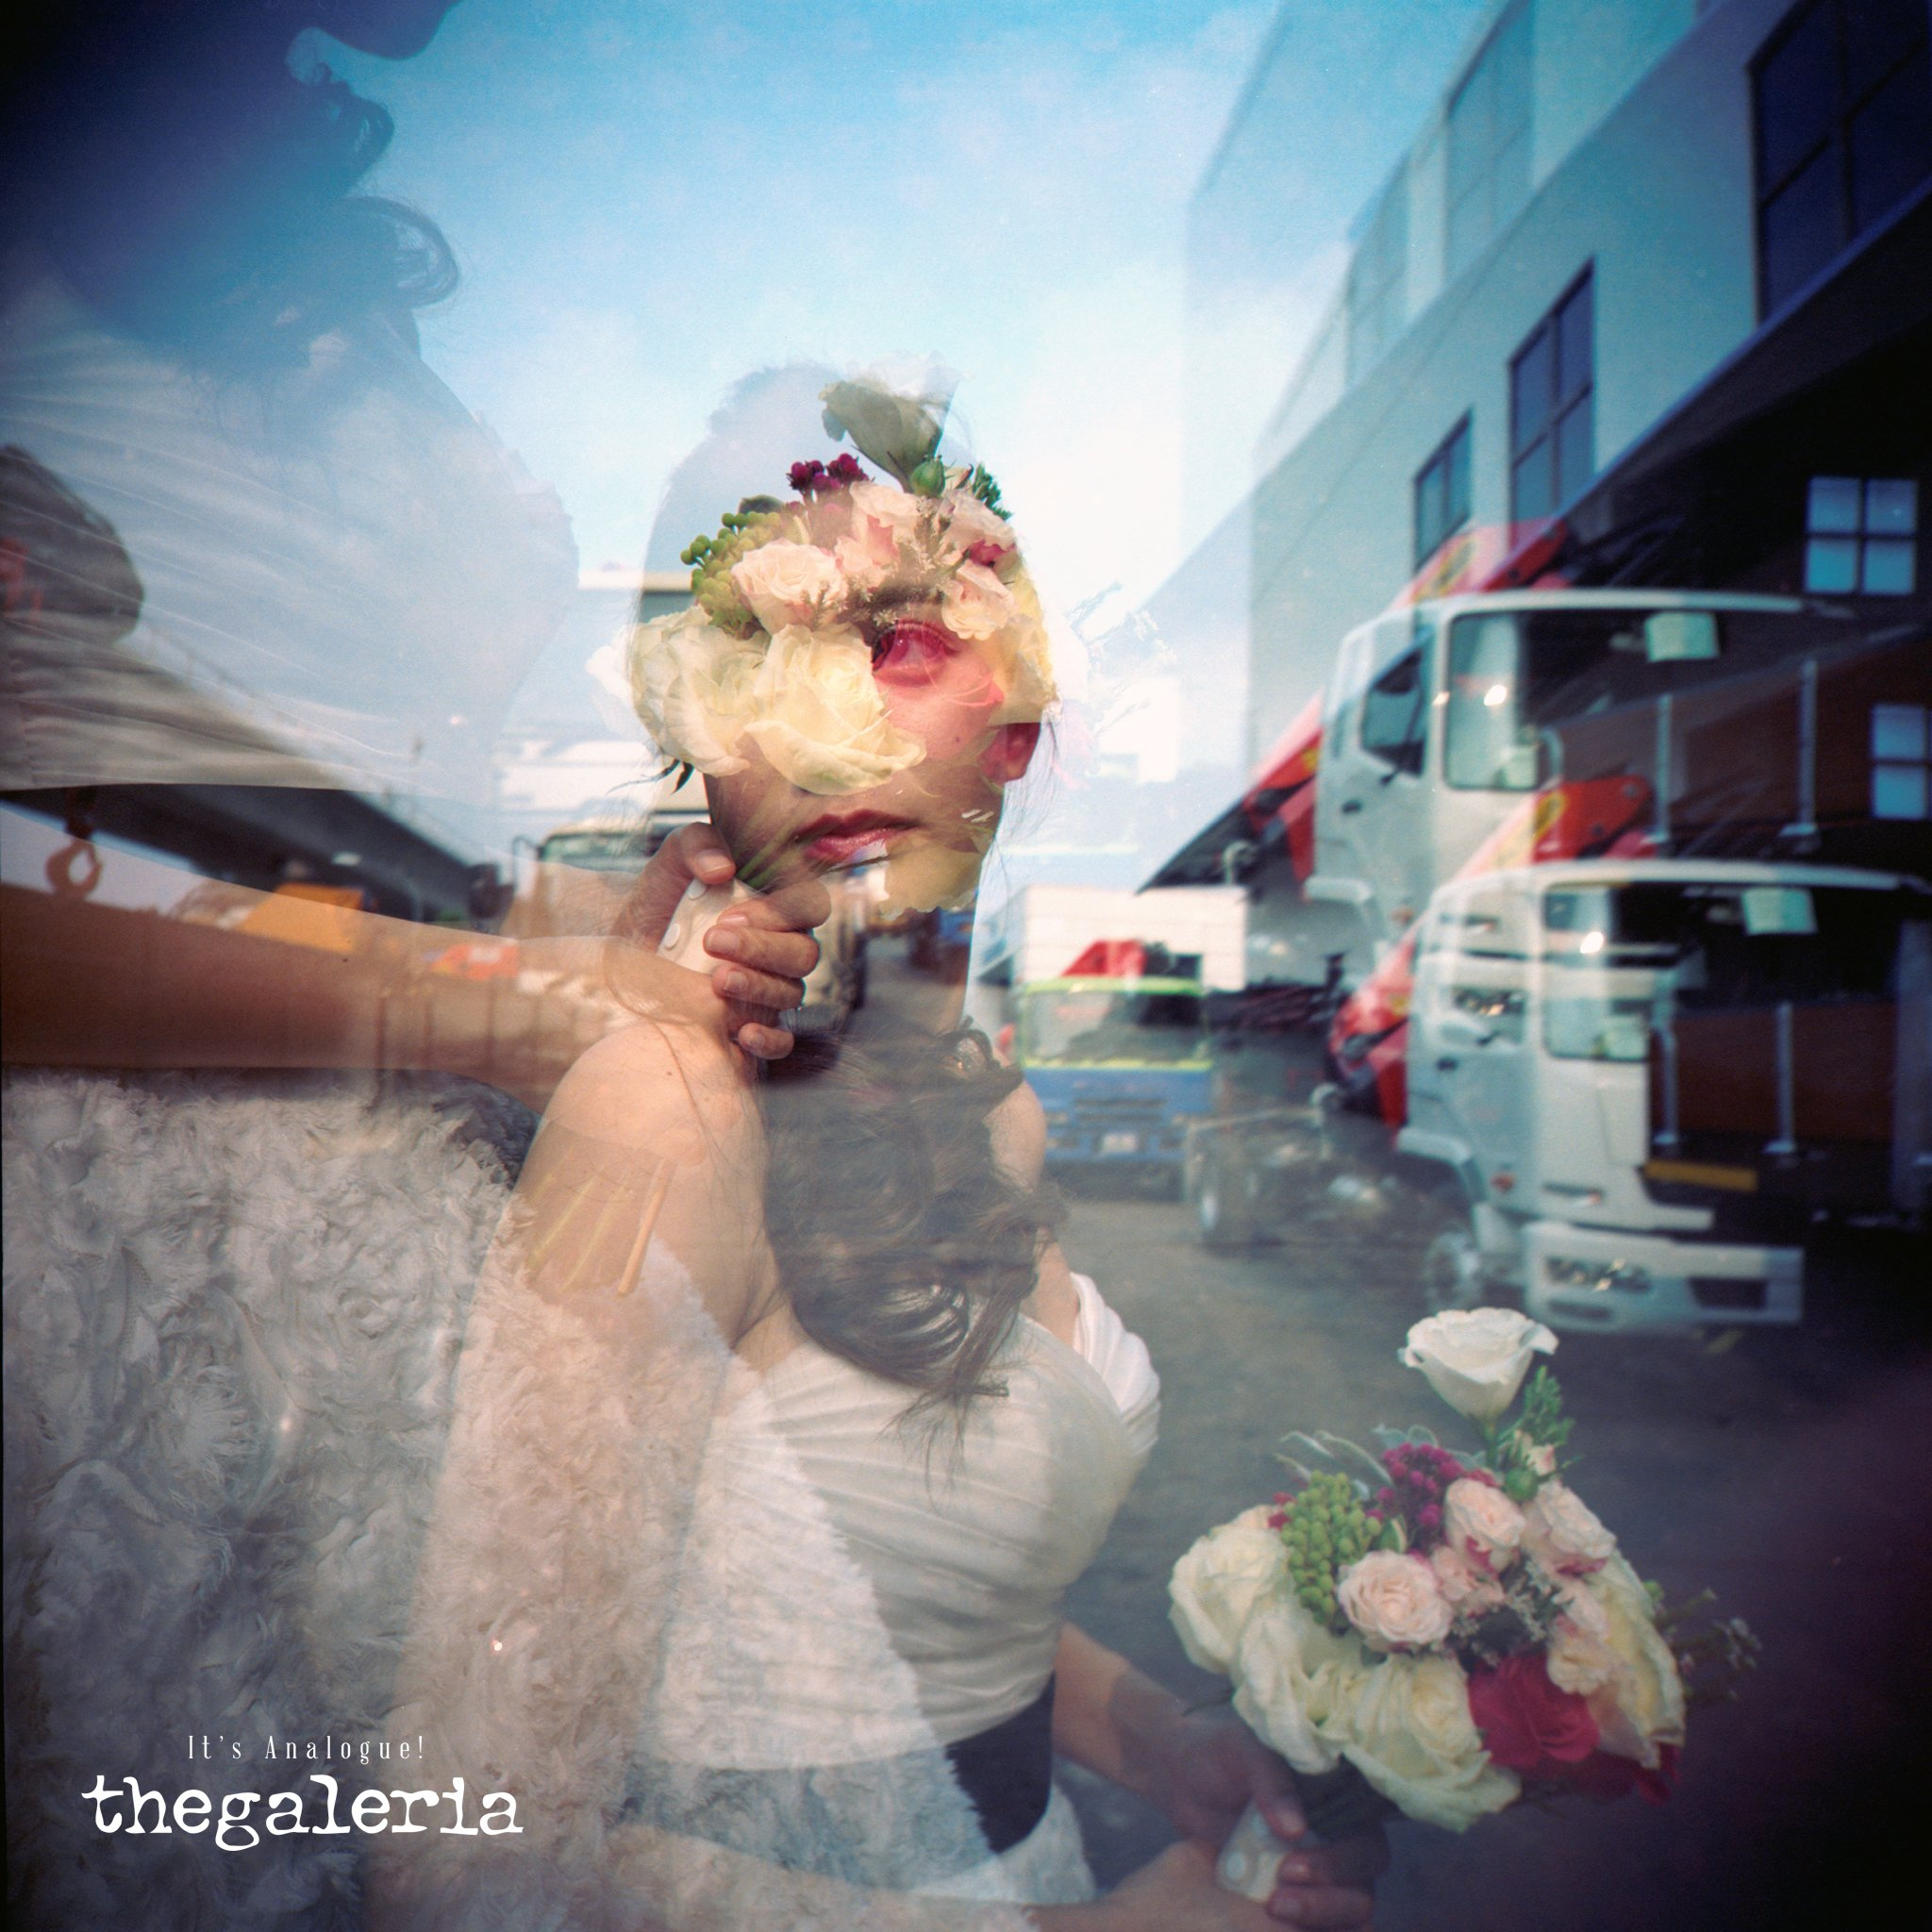 Film Wedding Photography by Film Wedding Photographer from thegaleria / Lomography LC-A 120 / Kodak Portra 800